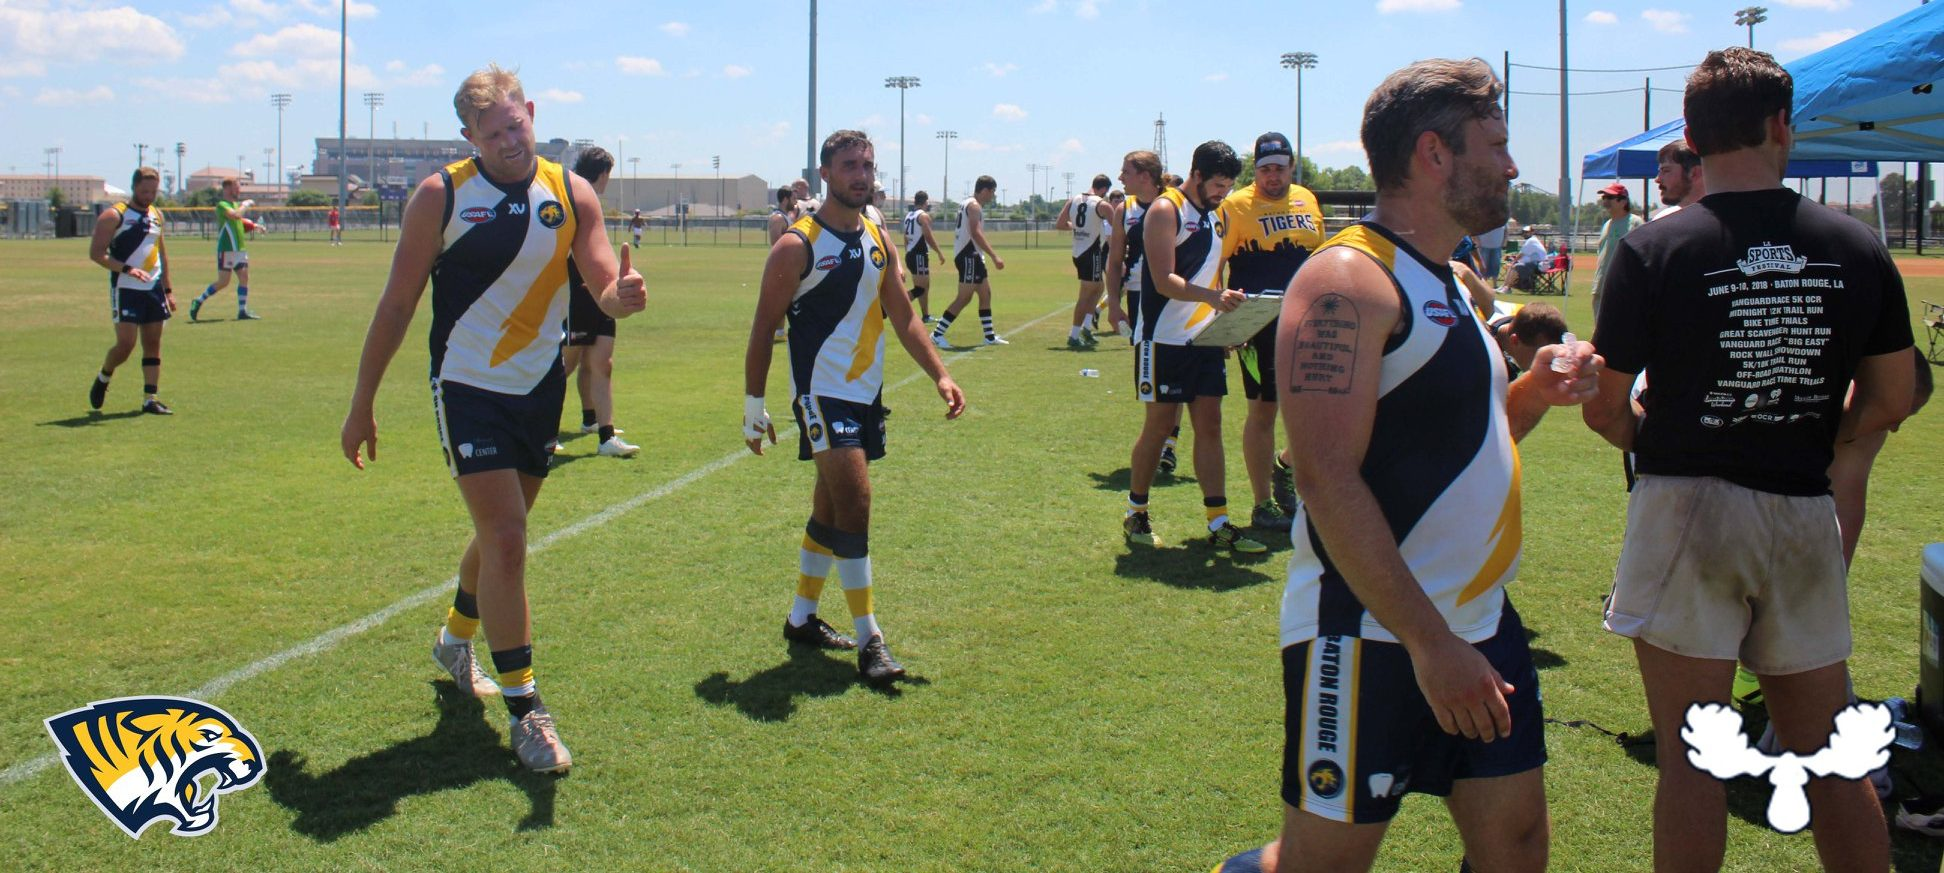 Baton Rouge Tigers Australian Rules Football Club